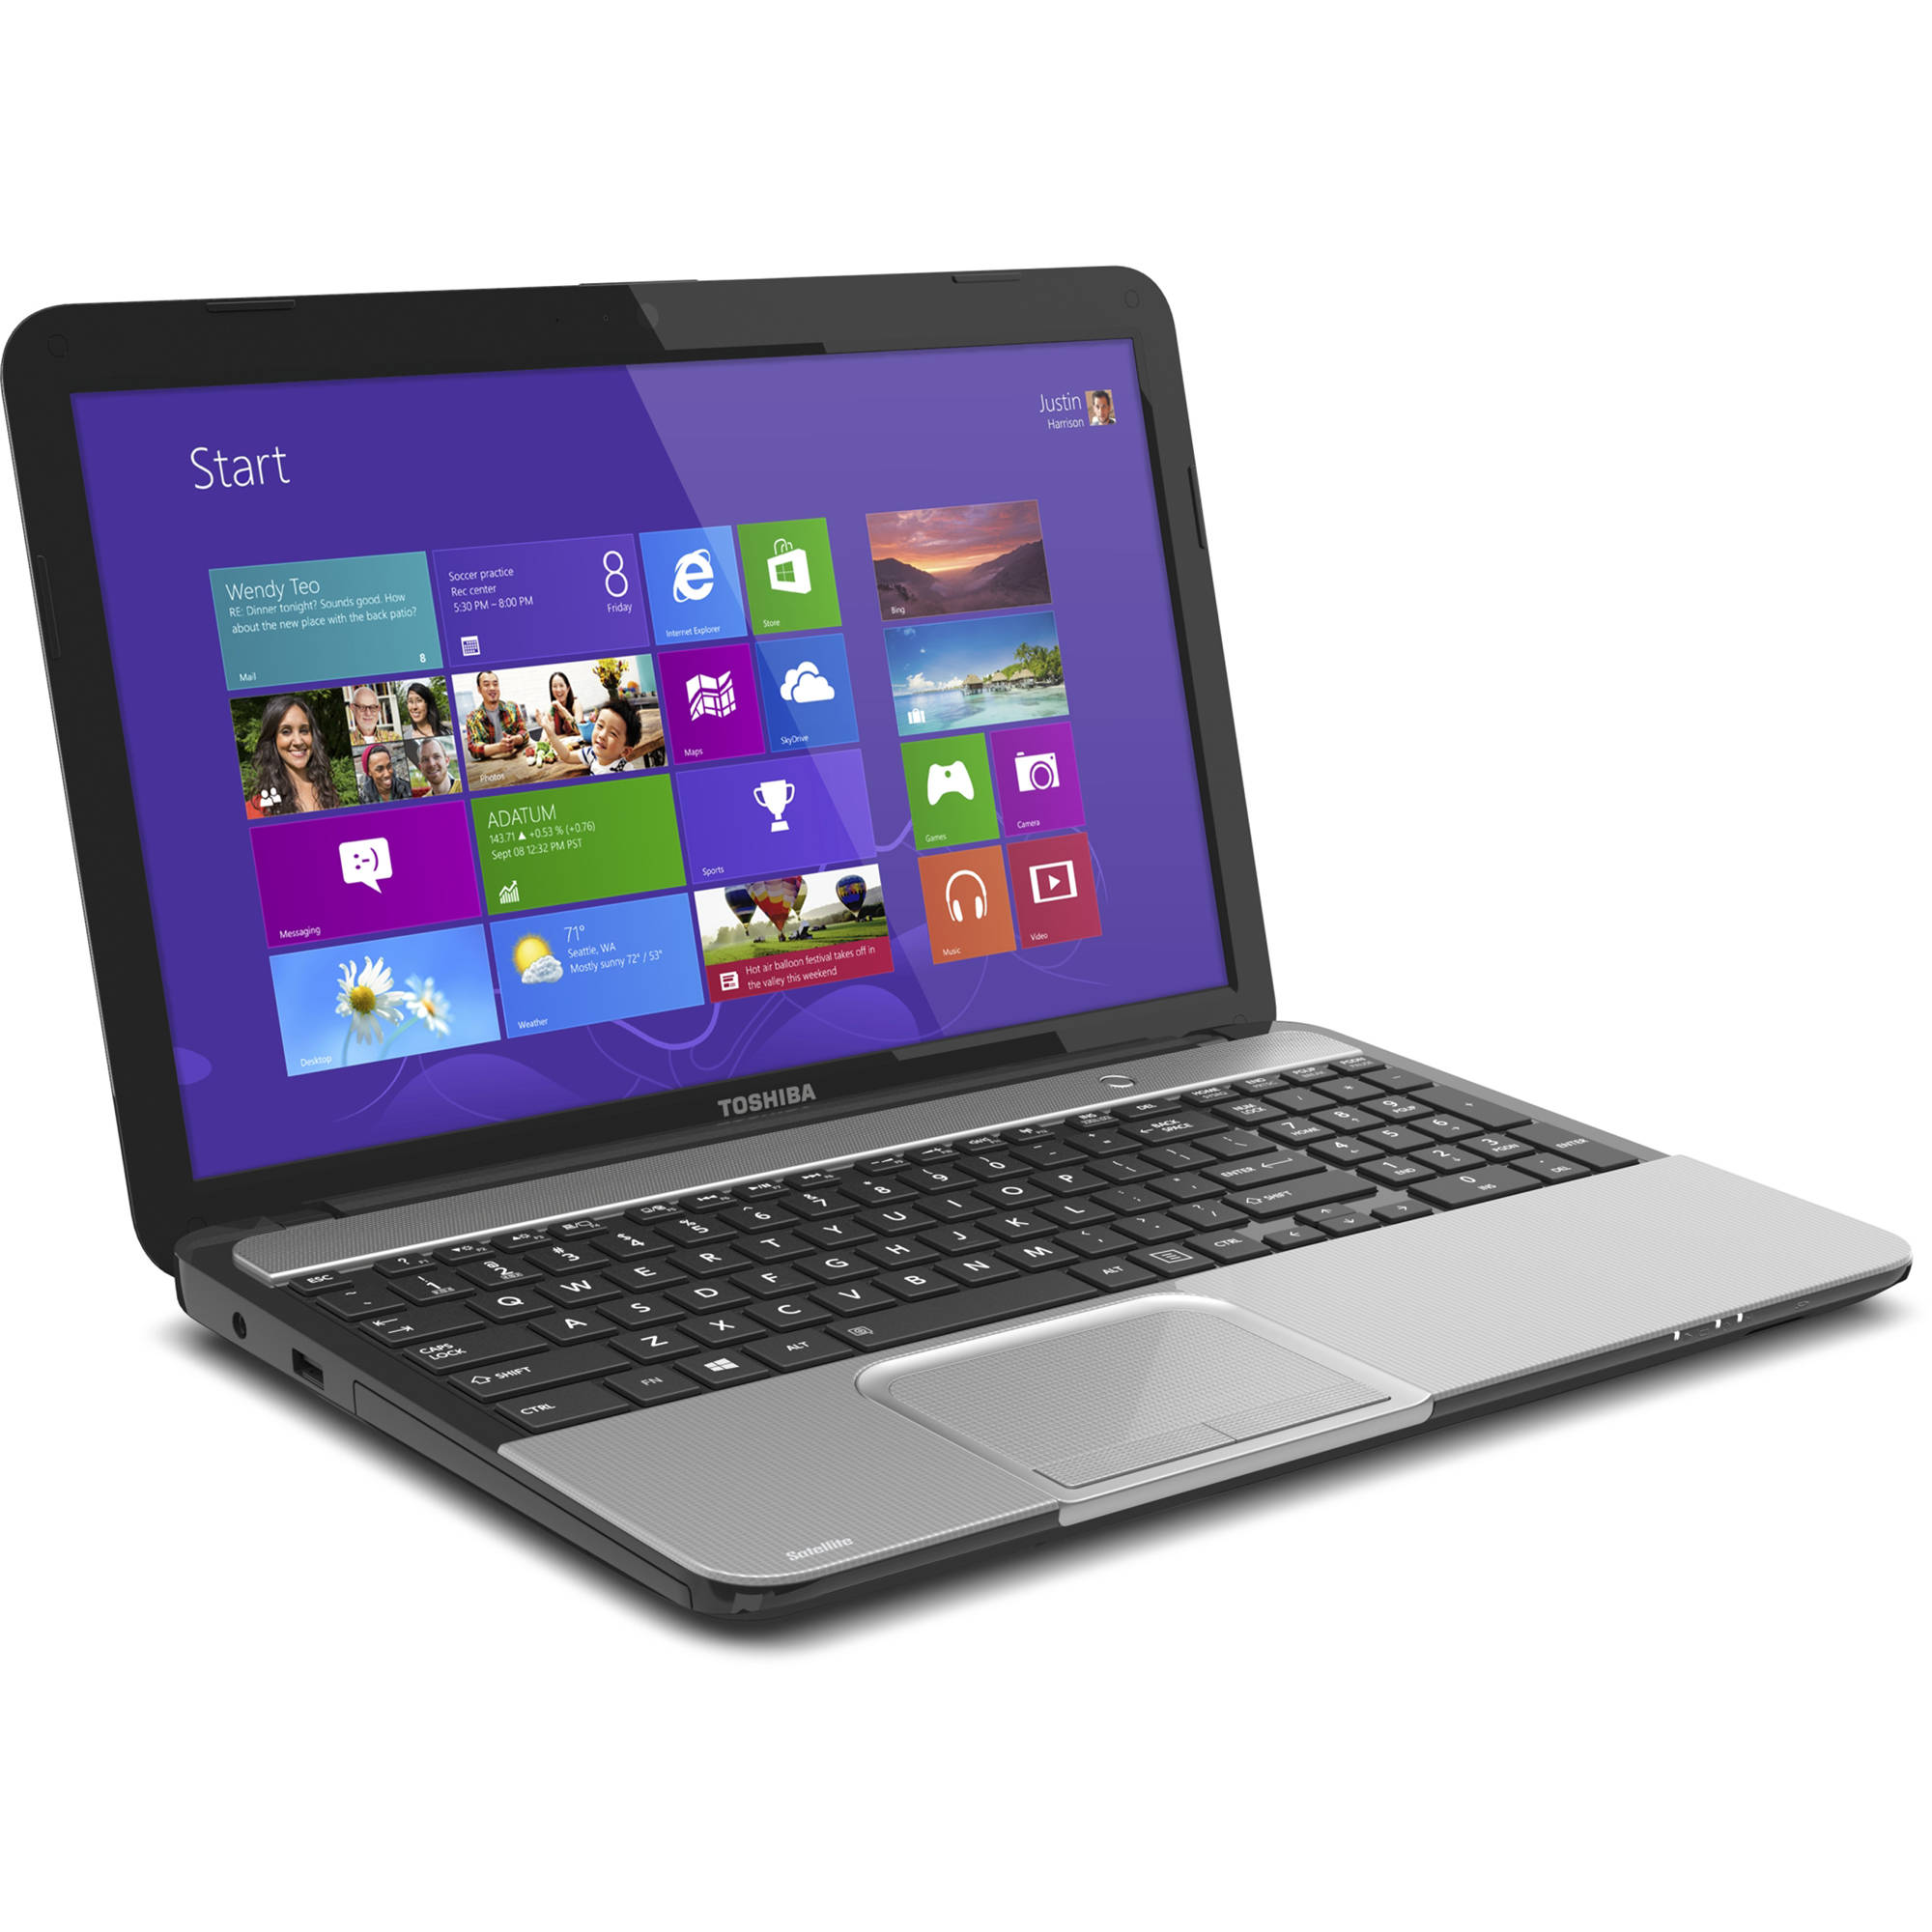 TOSHIBA SATELLITE L855D ECO DRIVERS FOR WINDOWS 10